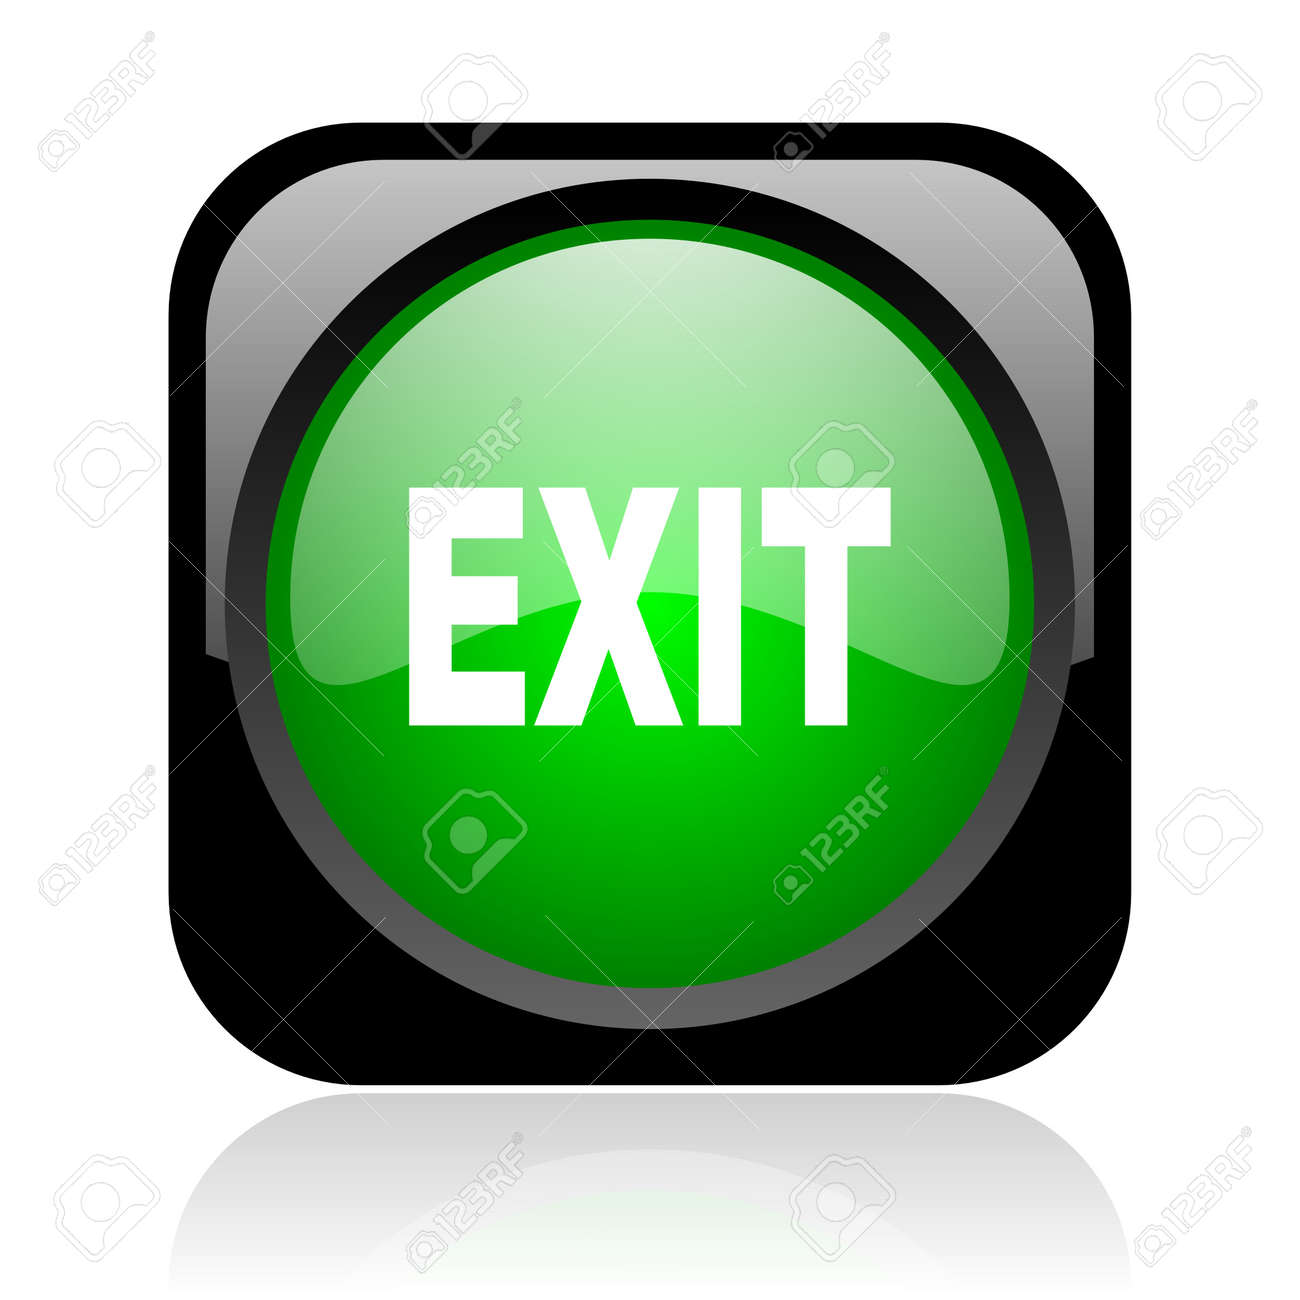 exit black and green square web glossy icon Stock Photo - 19004320